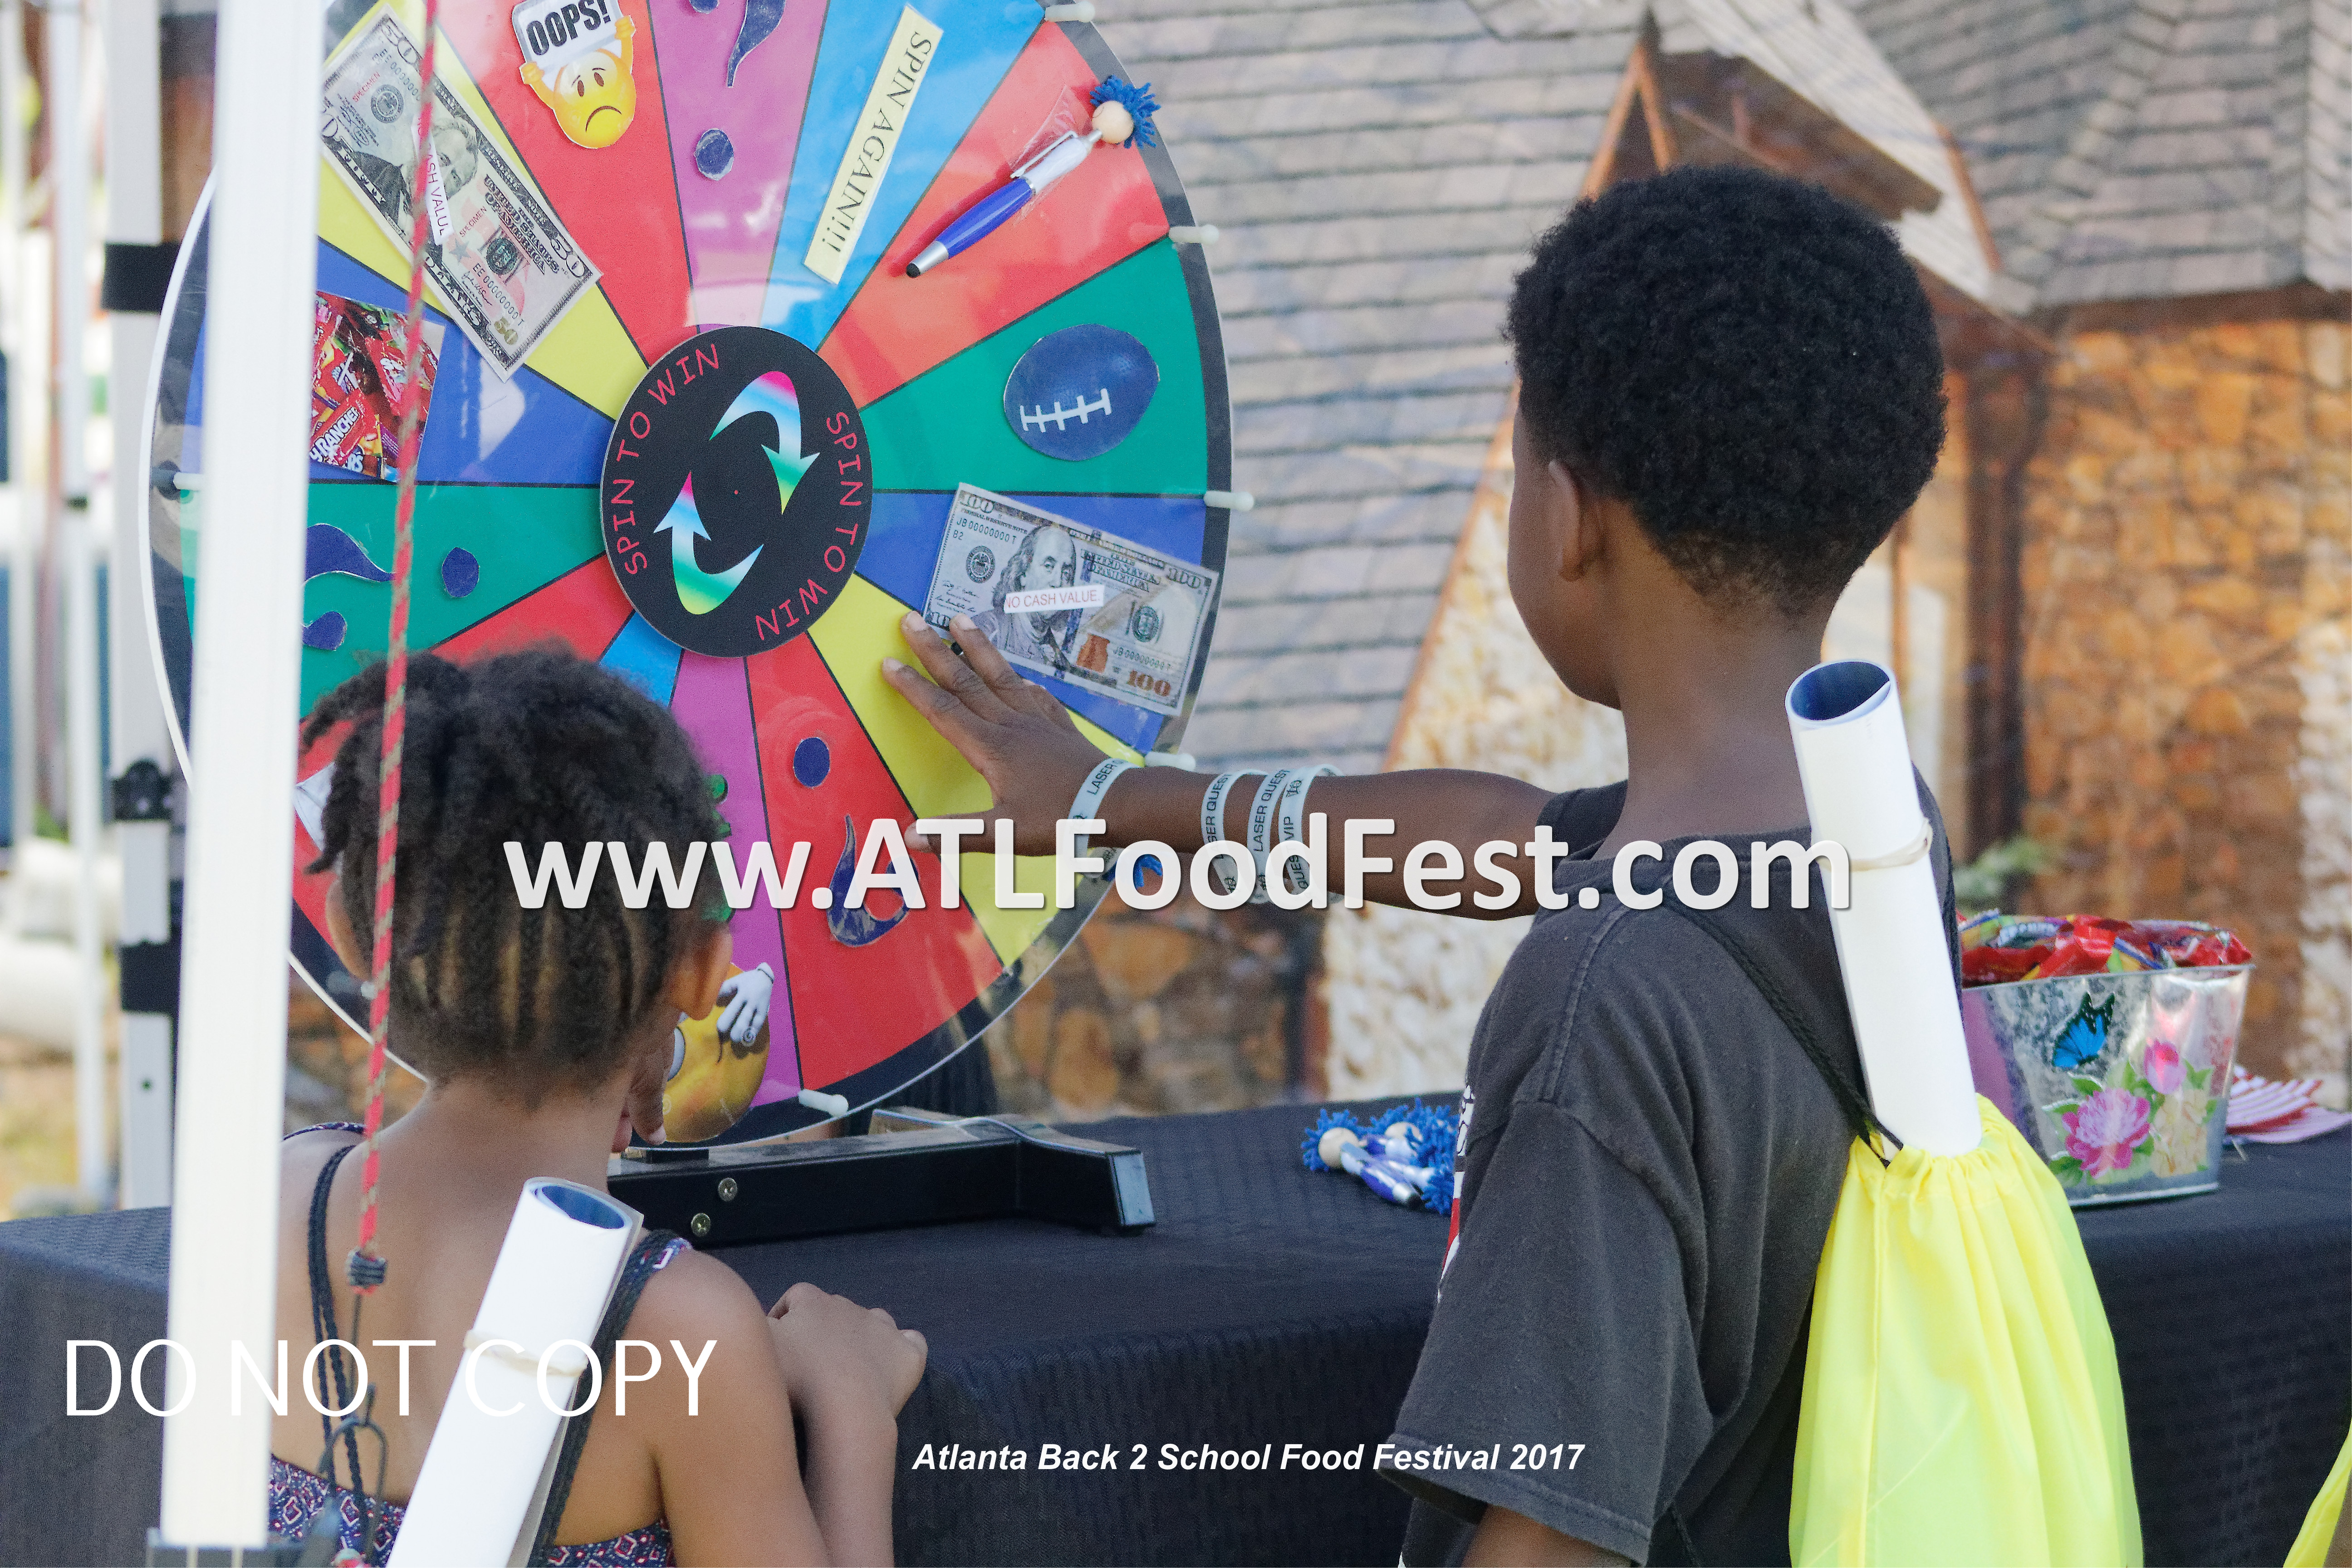 Atlanta Back 2 School Food Festival